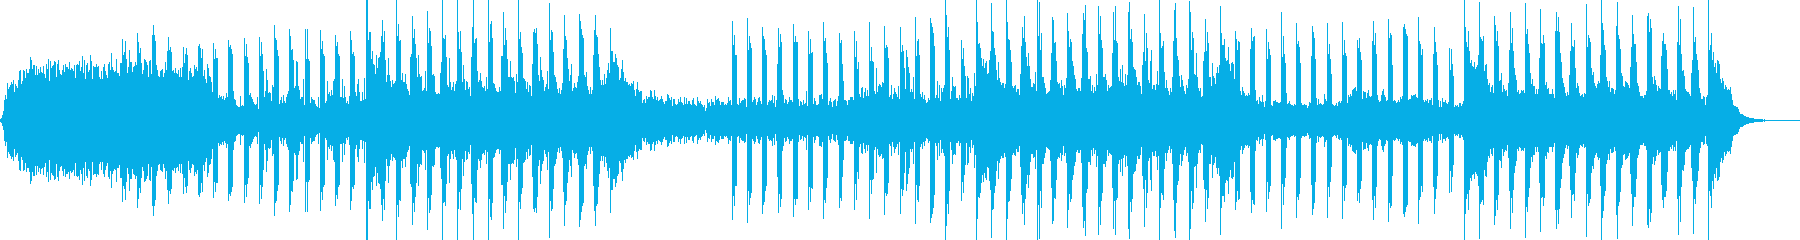 Movie music, majestic, for films-14's reproduced waveform